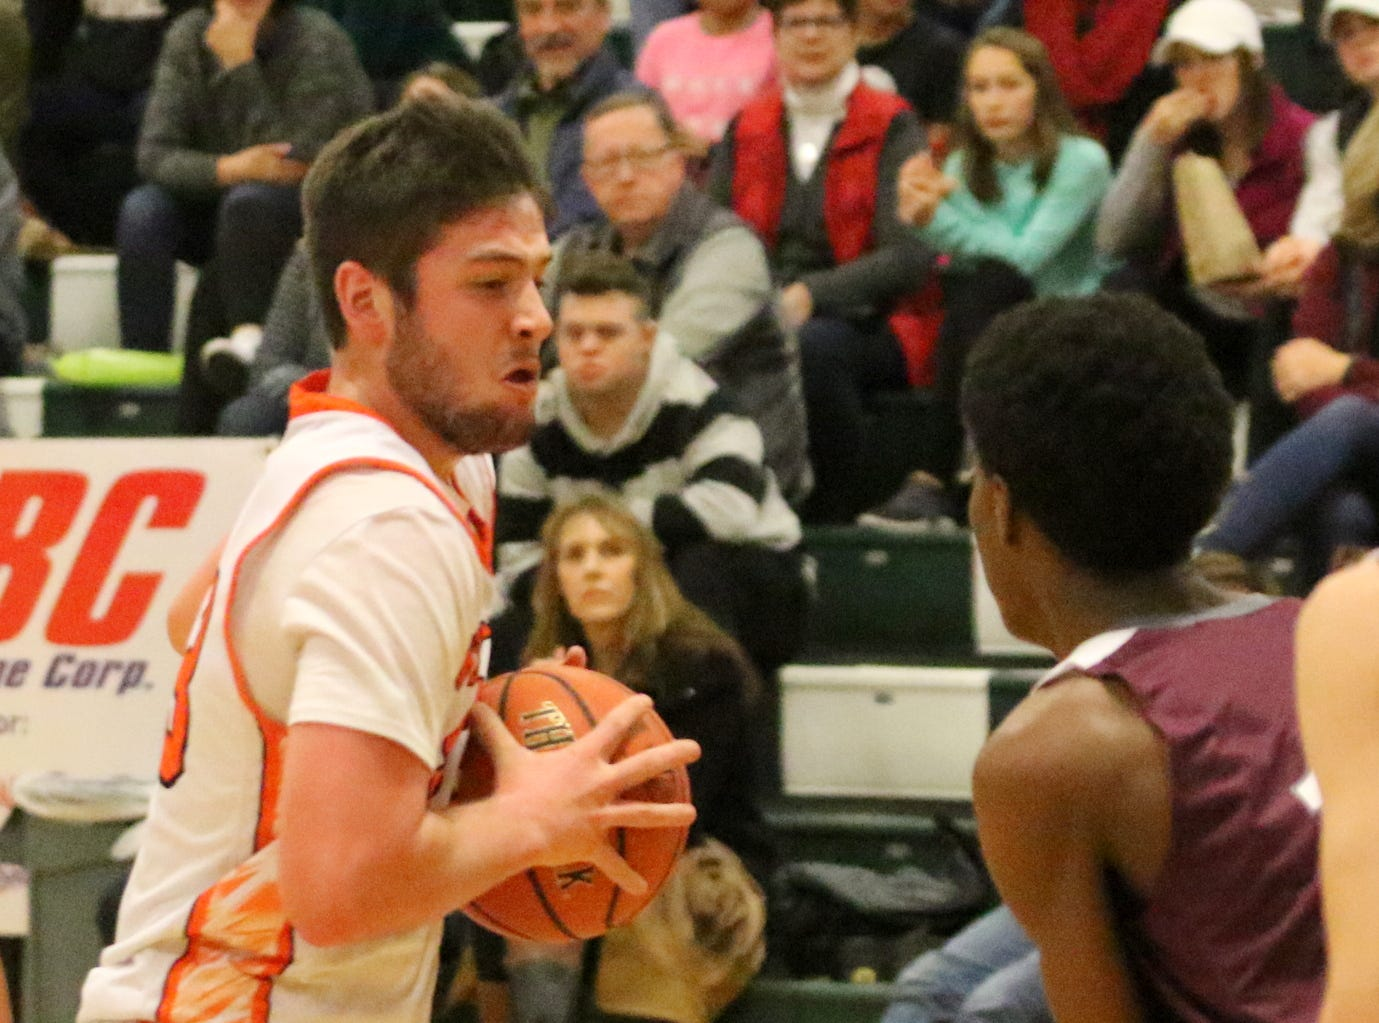 Johnson City was a 58-35 winner over Wellsville in the boys Regional Division 2 championship game at the Josh Palmer Fund Elmira Holiday Inn Classic on Dec. 30, 2018 at Elmira High School.